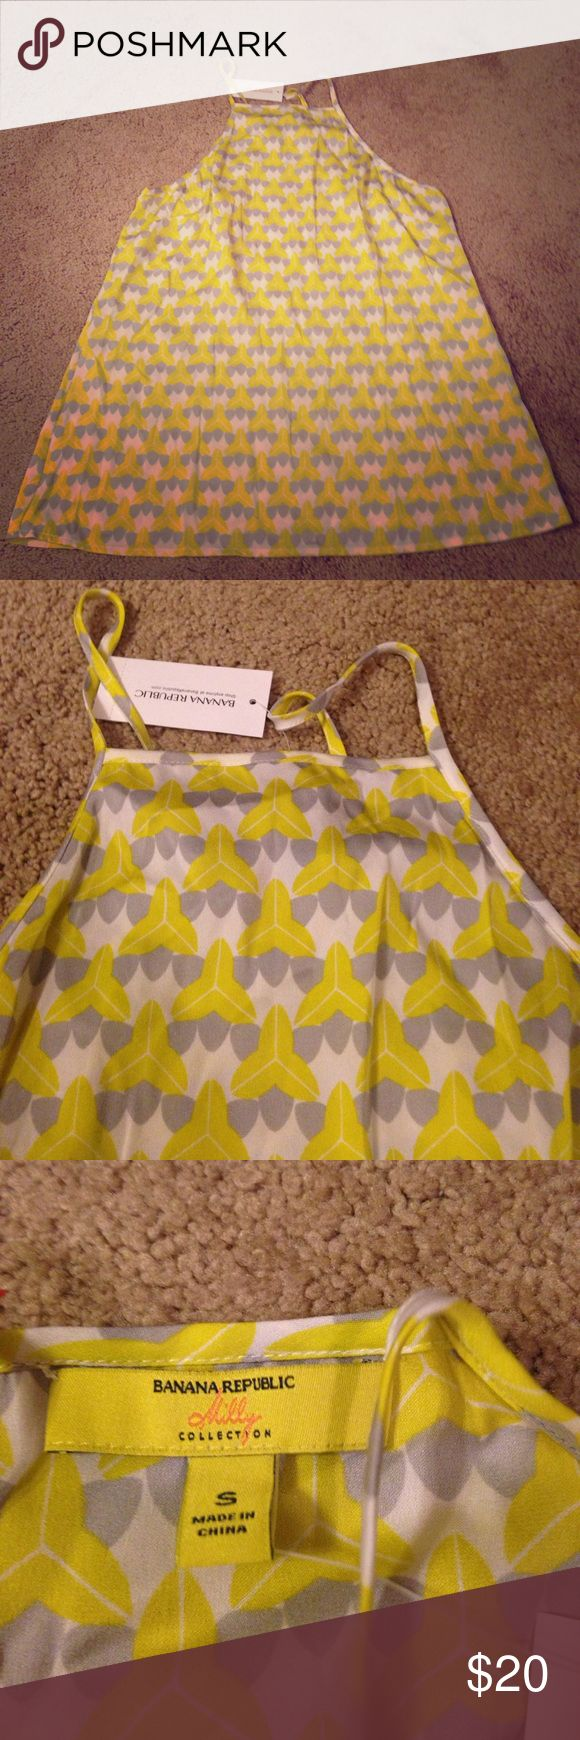 Geometric print Banana Republic cami Milly collection. New yellow, gray, white geometric print camisole tank. Silk spandex mix. Banana Republic Tops Camisoles